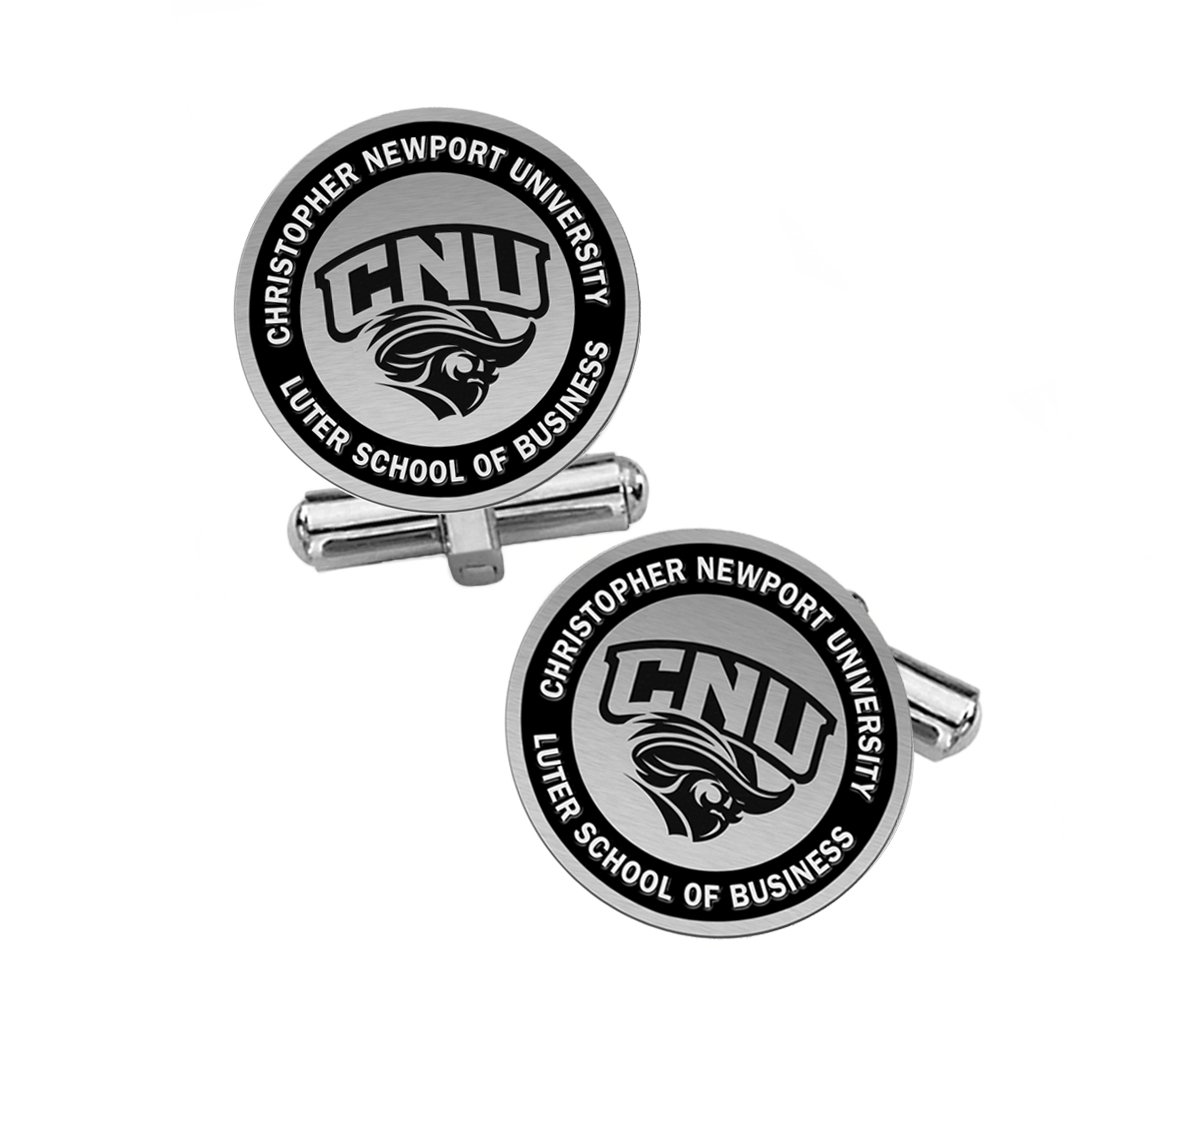 Luter School of Business Cuff Links | Christopher Newport University by College Jewelry